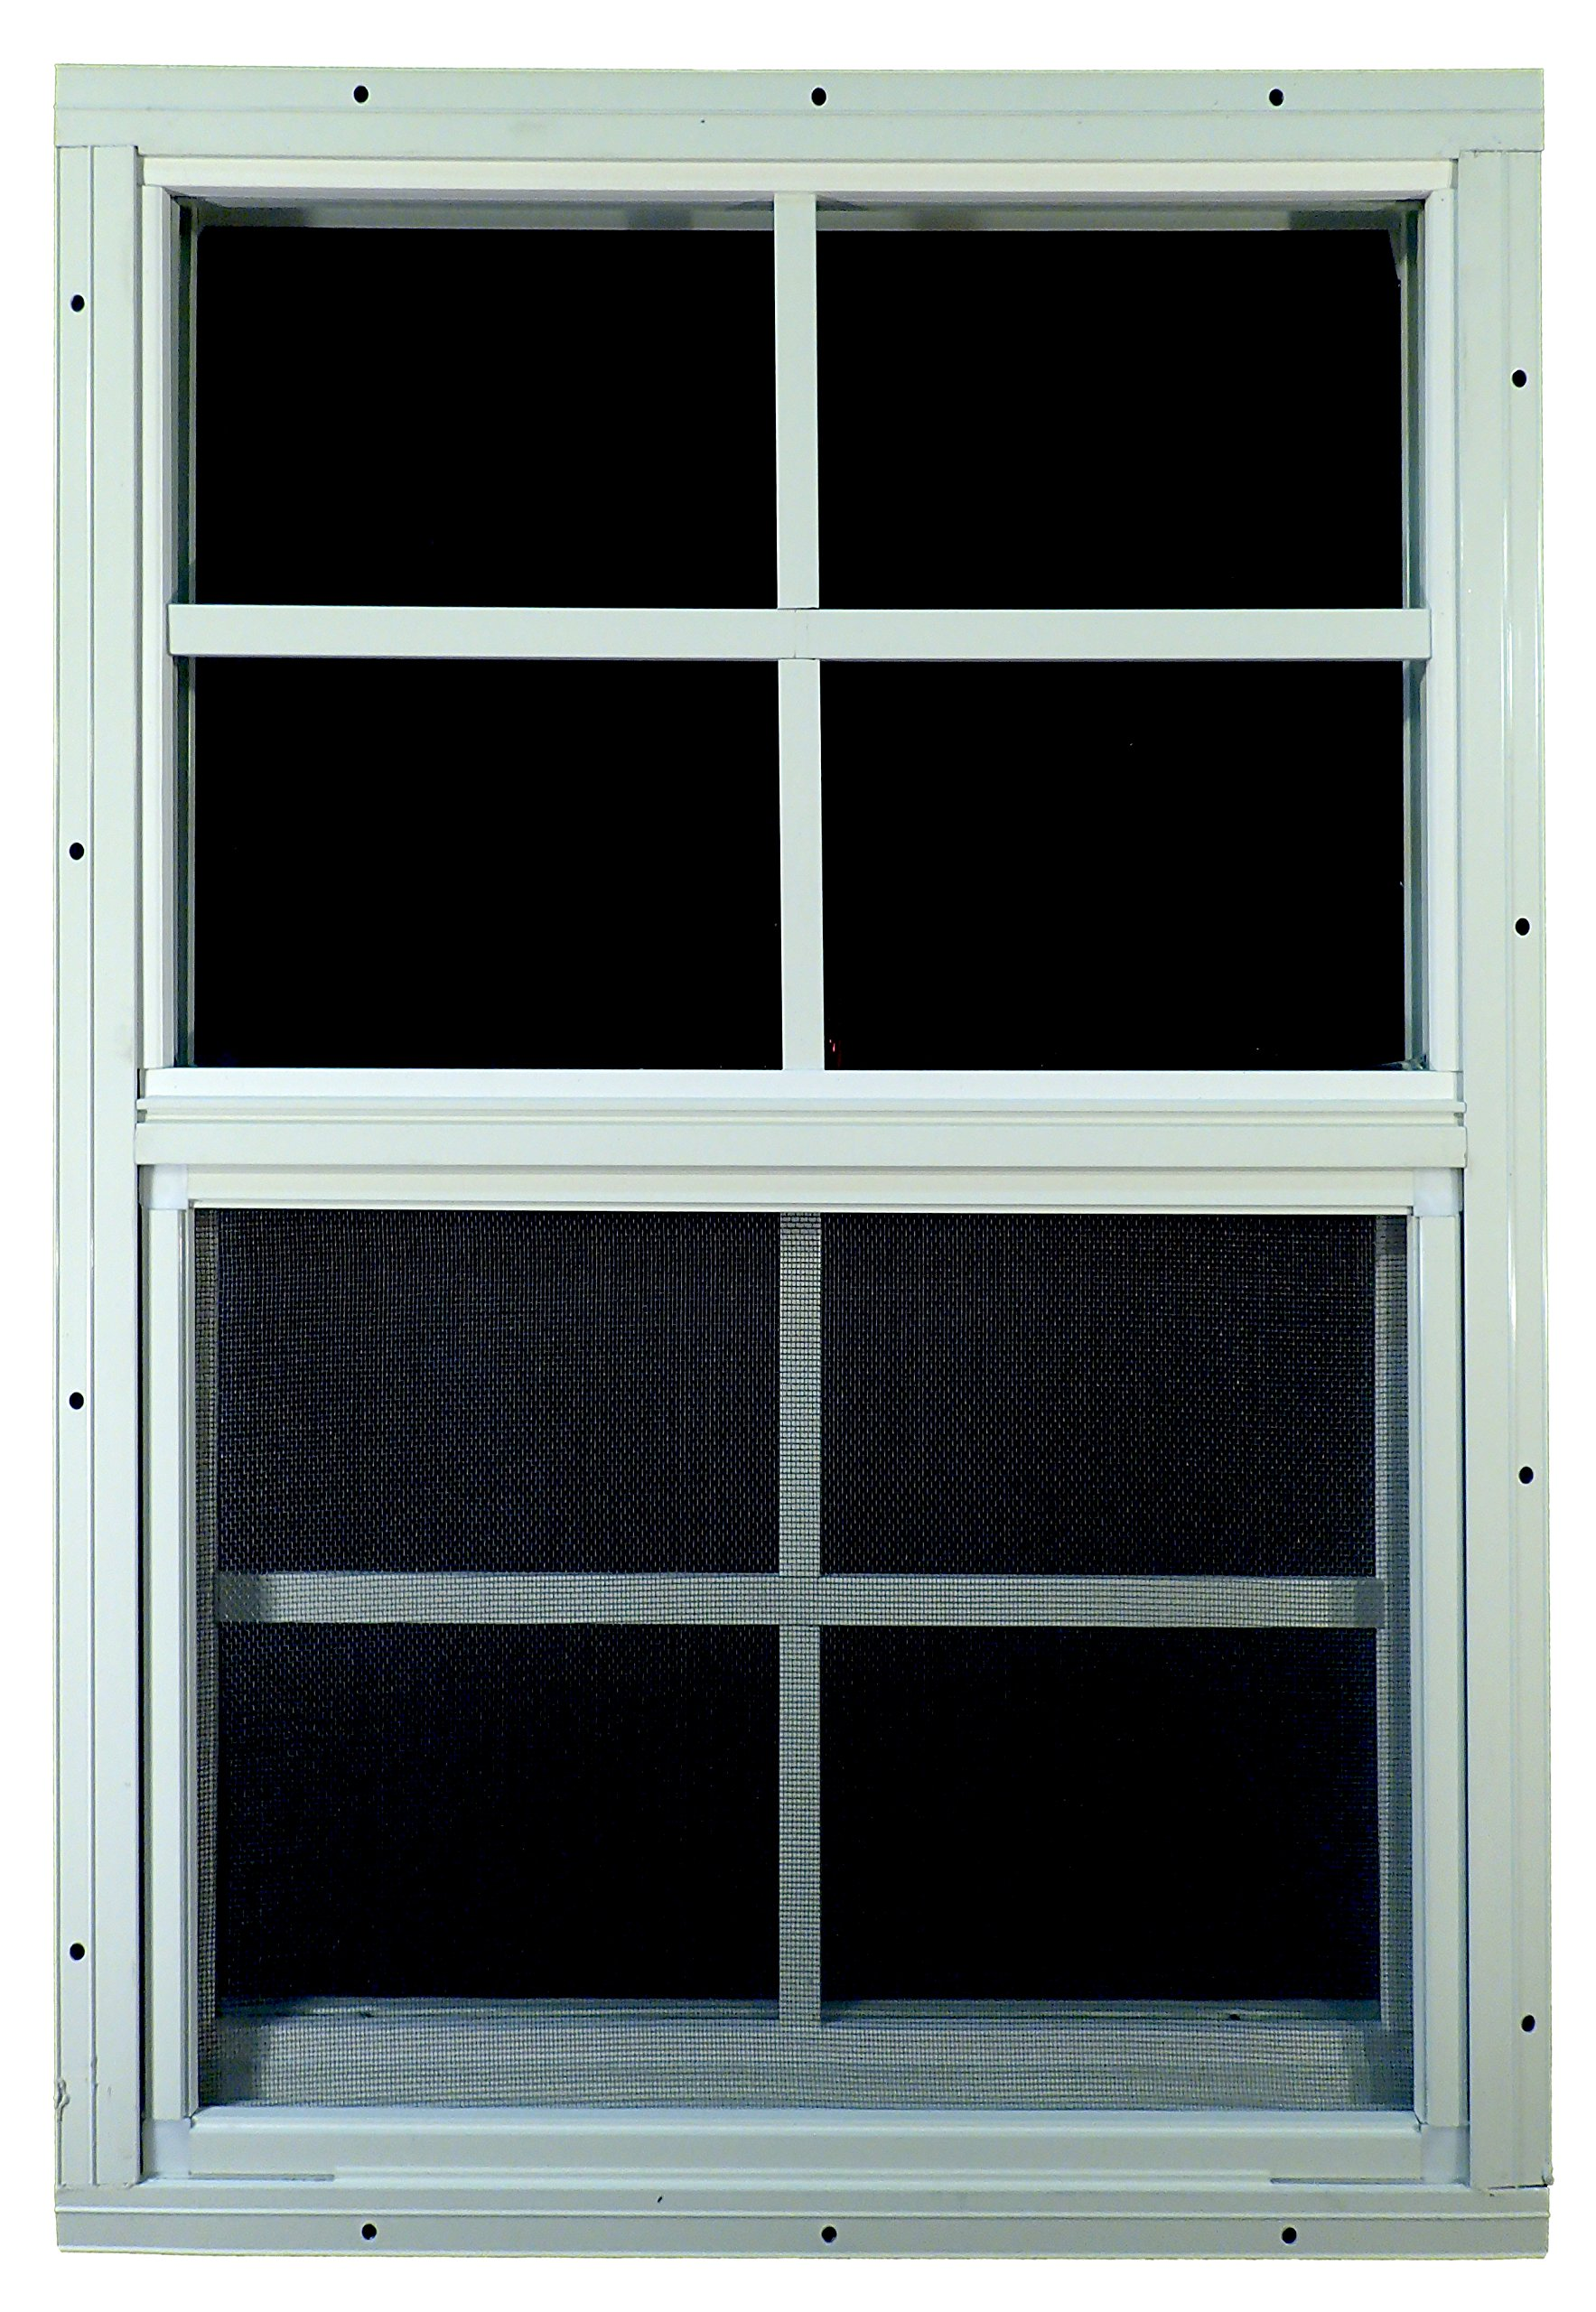 Shed Windows 18'' W x 27'' H - Flush Mount - Playhouse Windows (White)